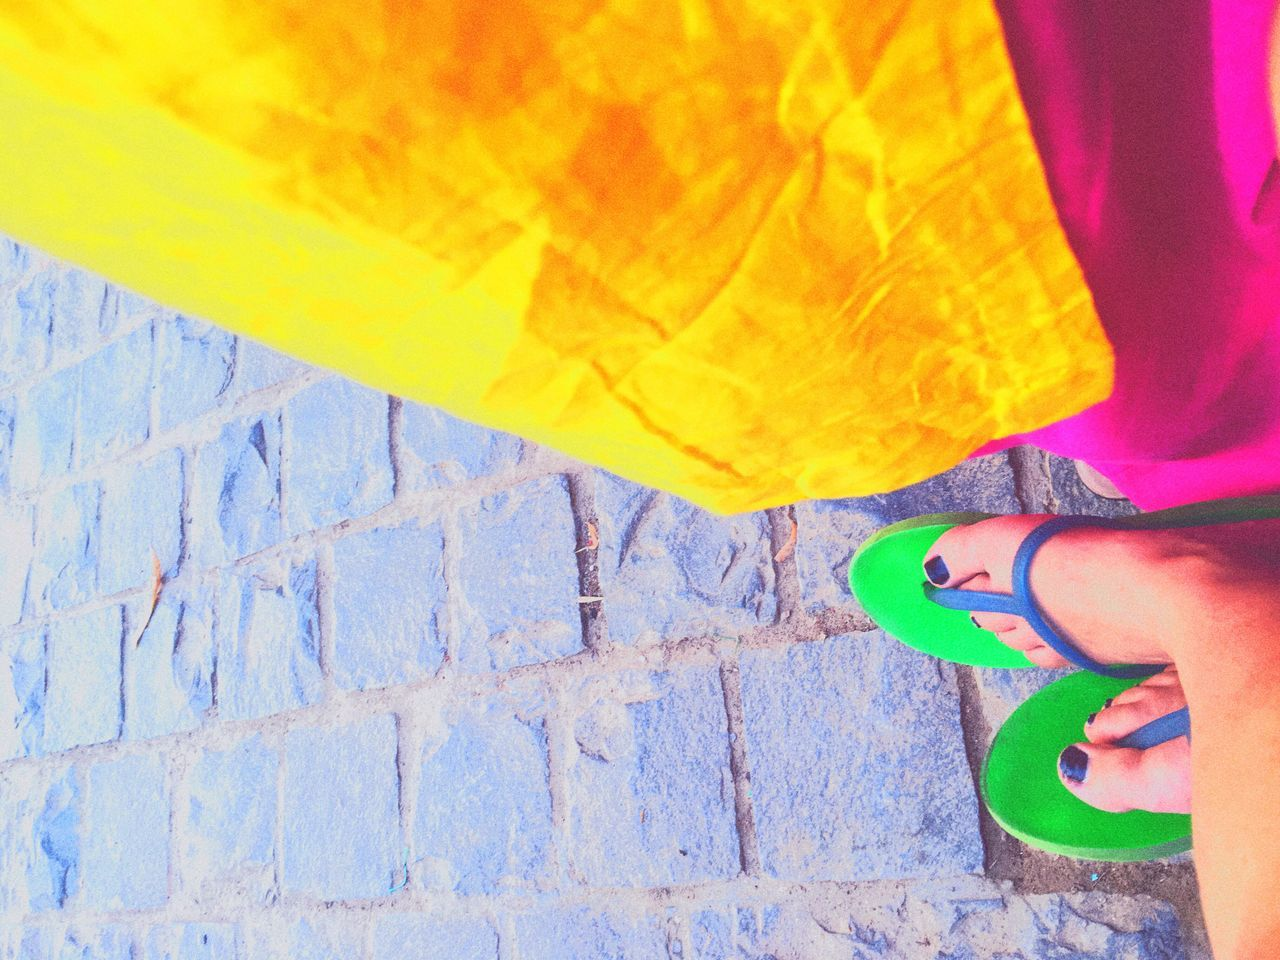 human body part, human leg, real people, low section, body part, one person, standing, lifestyles, shoe, high angle view, women, leisure activity, adult, day, yellow, multi colored, unrecognizable person, outdoors, human foot, jeans, human limb